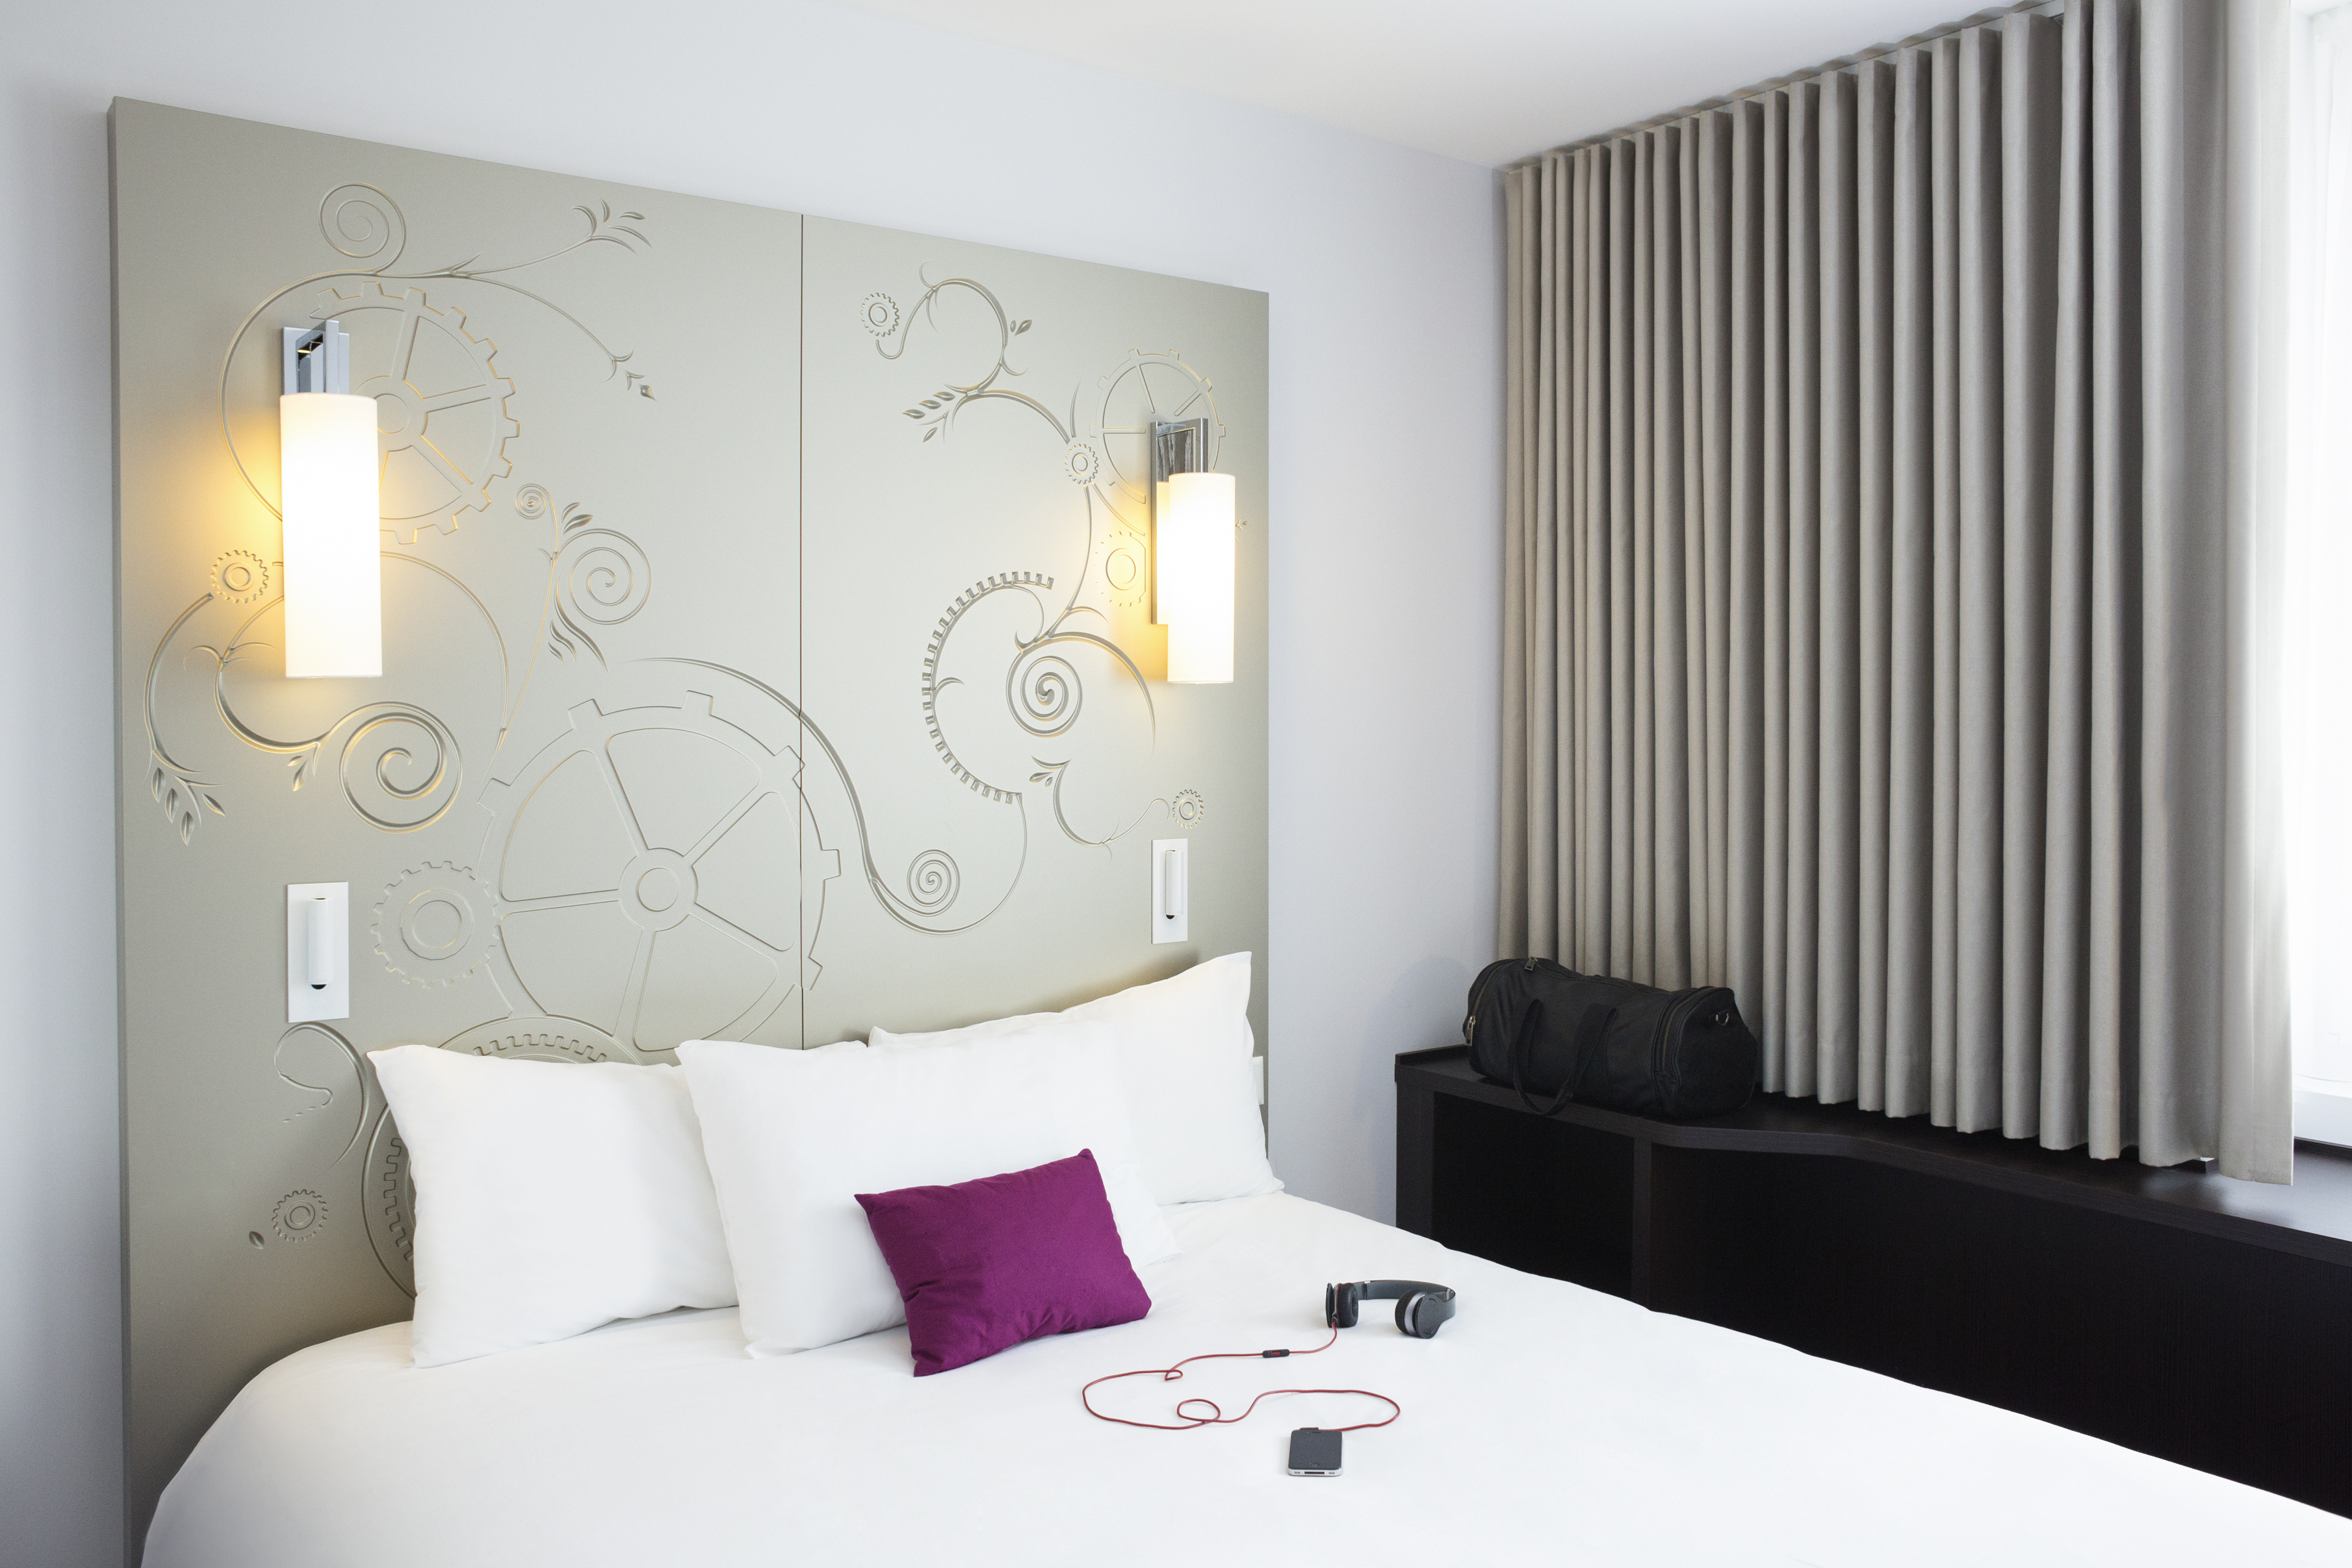 Hotel ibis Styles in Genf